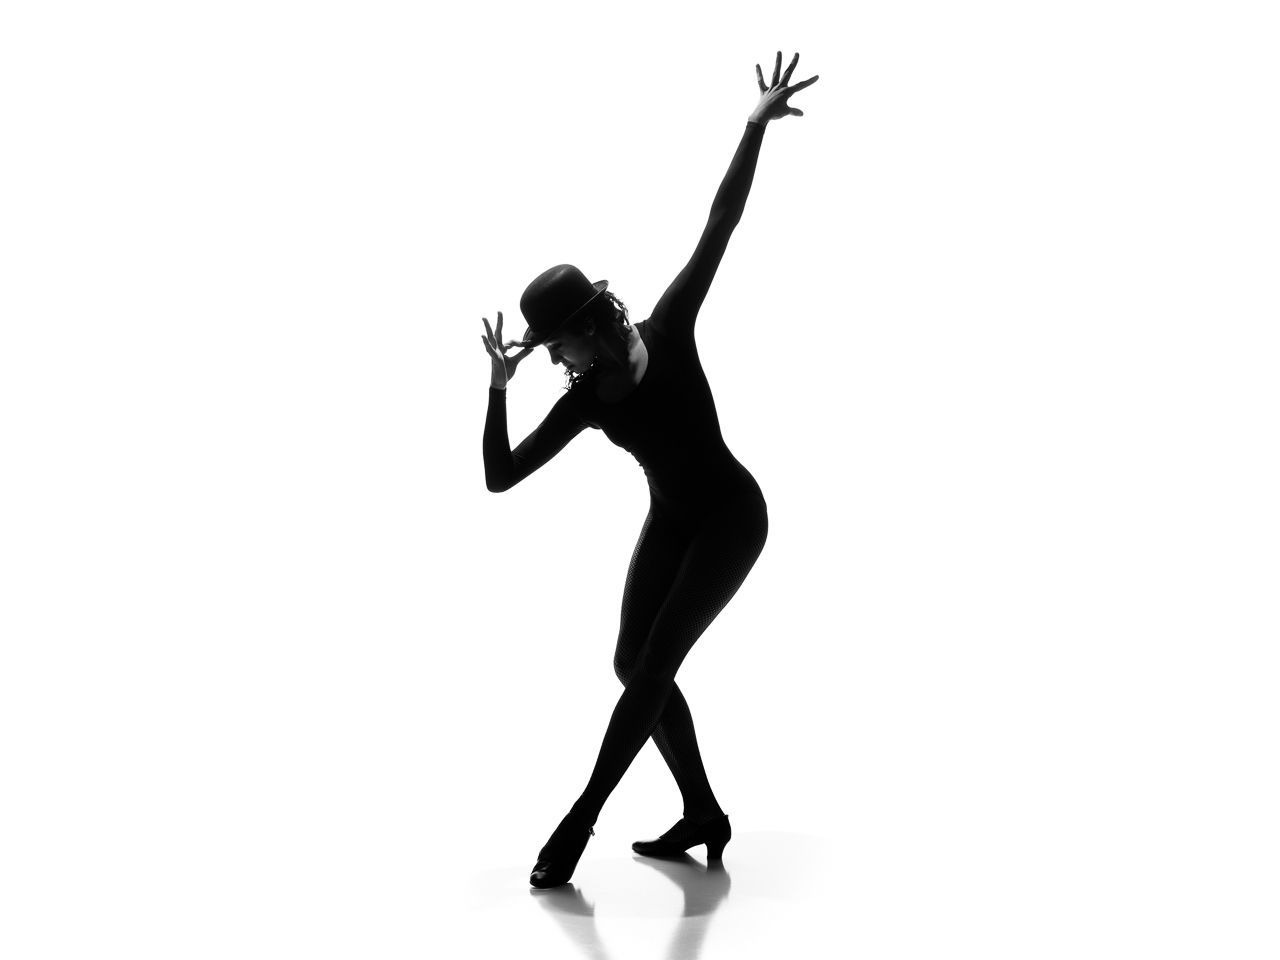 Dancer Silhouette Dance Silhouette Jazz Dance Poses Tap Dance Photography